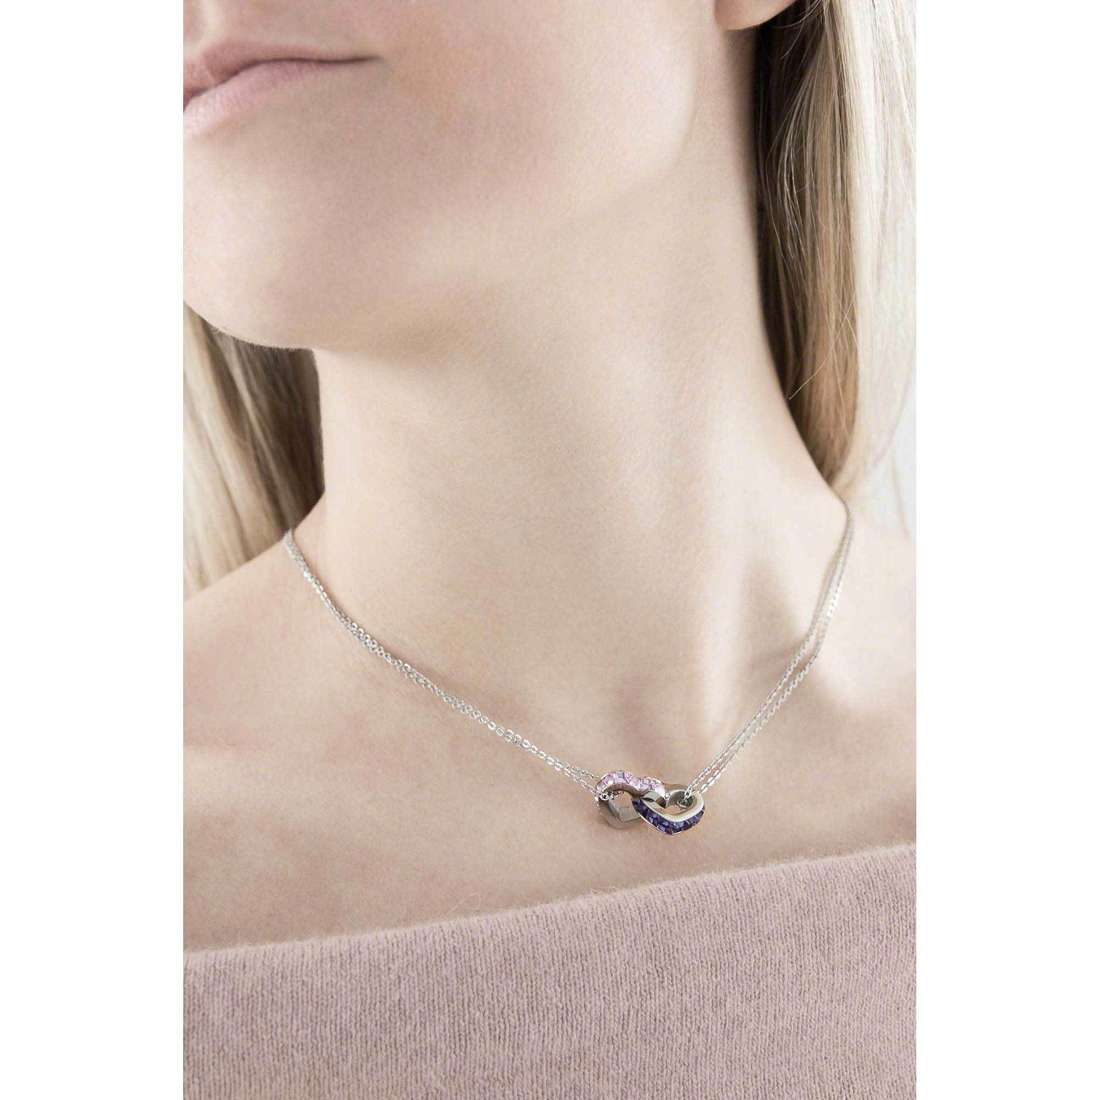 Brosway necklaces Romeo & Juliet woman BRJ08 indosso